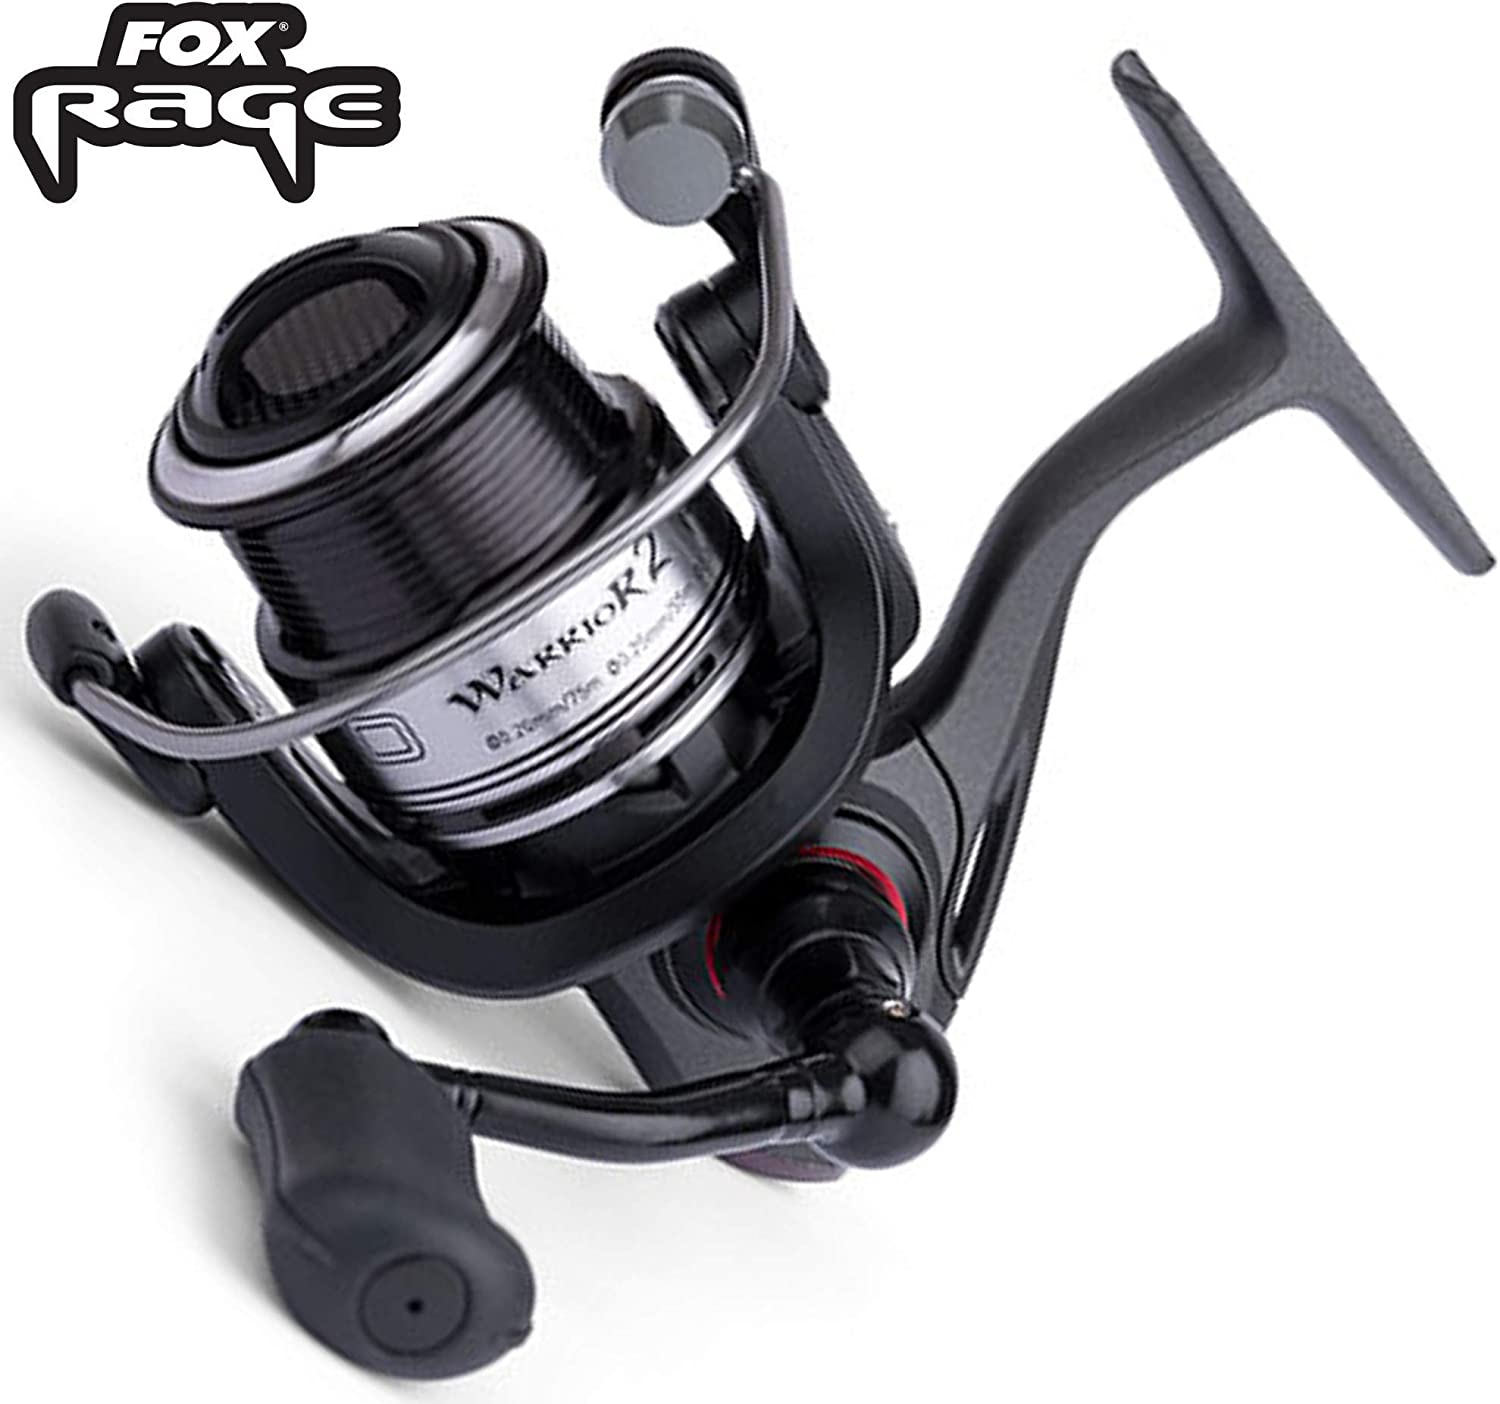 All Sizes FOX Rage NEW WARRIOR 2 MK2 Spinning Fishing Reels